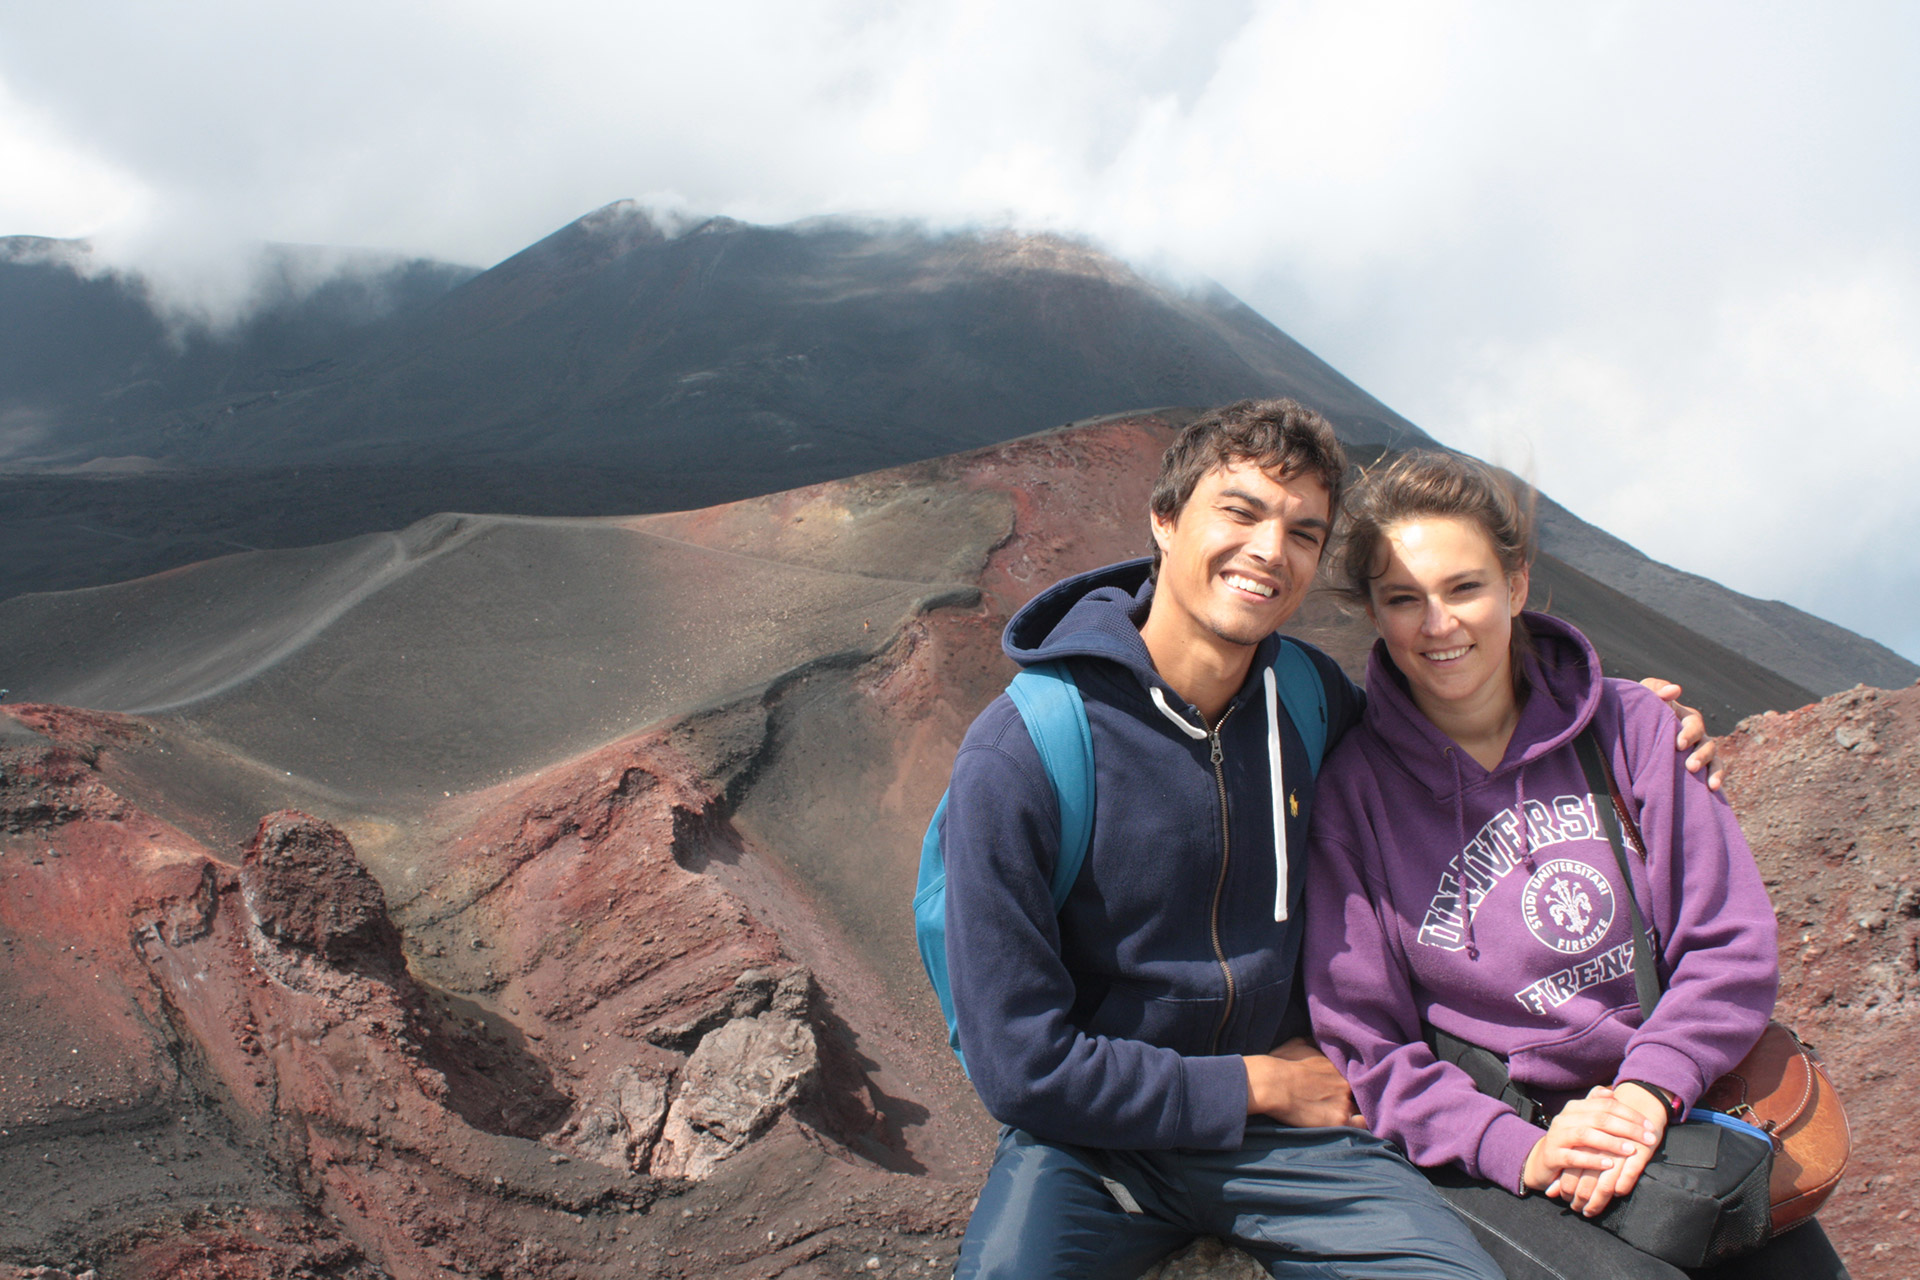 Florian and Marianna on Etna, Sicily